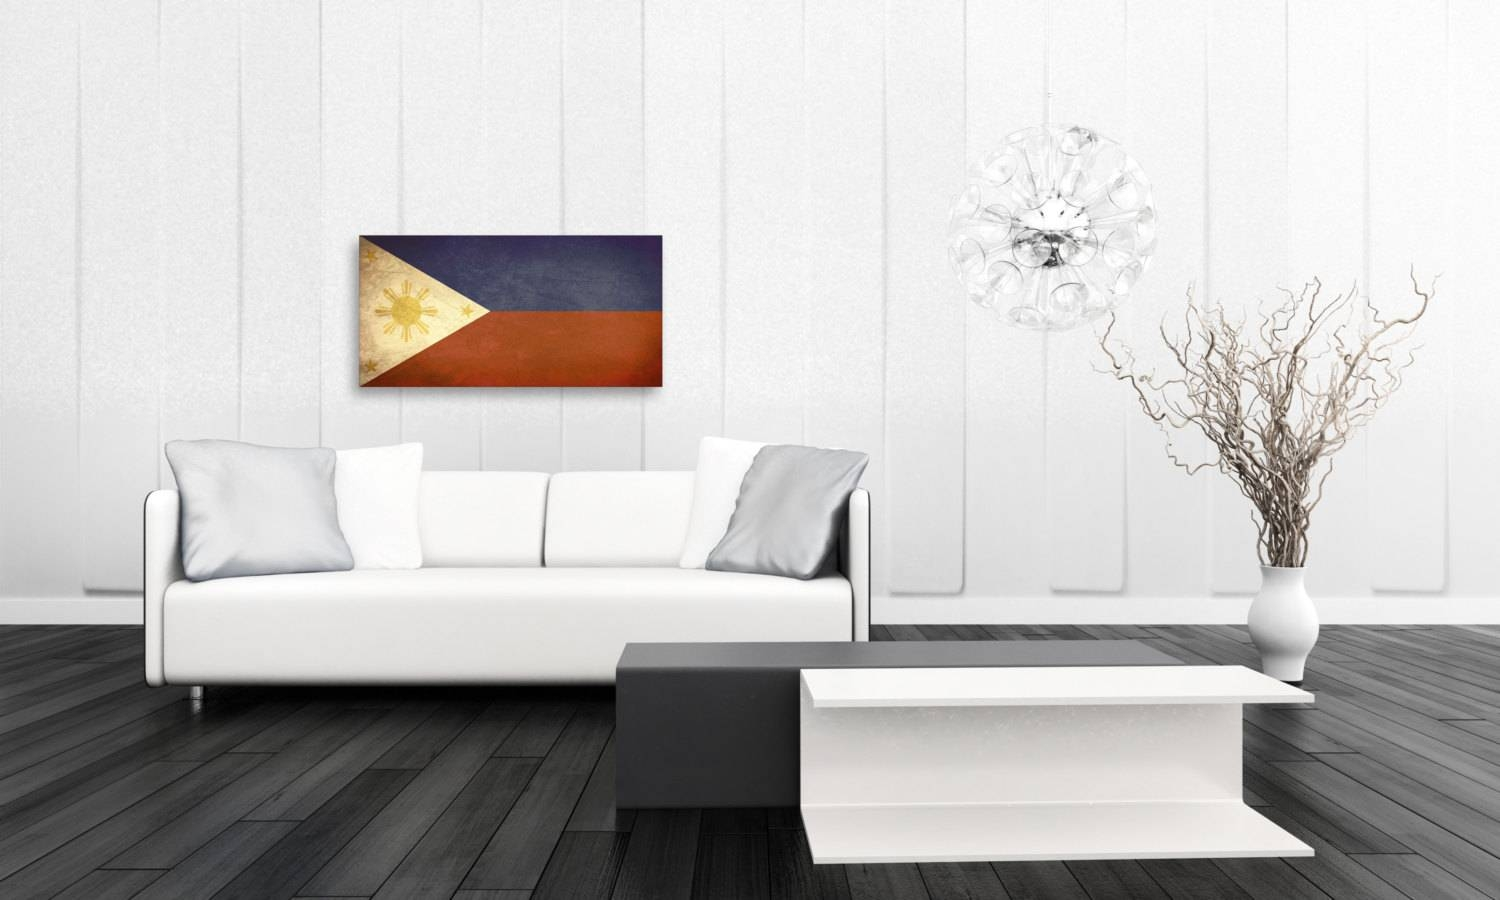 Vintage Filipino Flag Room Decor Gift Ideas Fine Art Inside Most Popular Filipino Wall Art (Gallery 17 of 30)